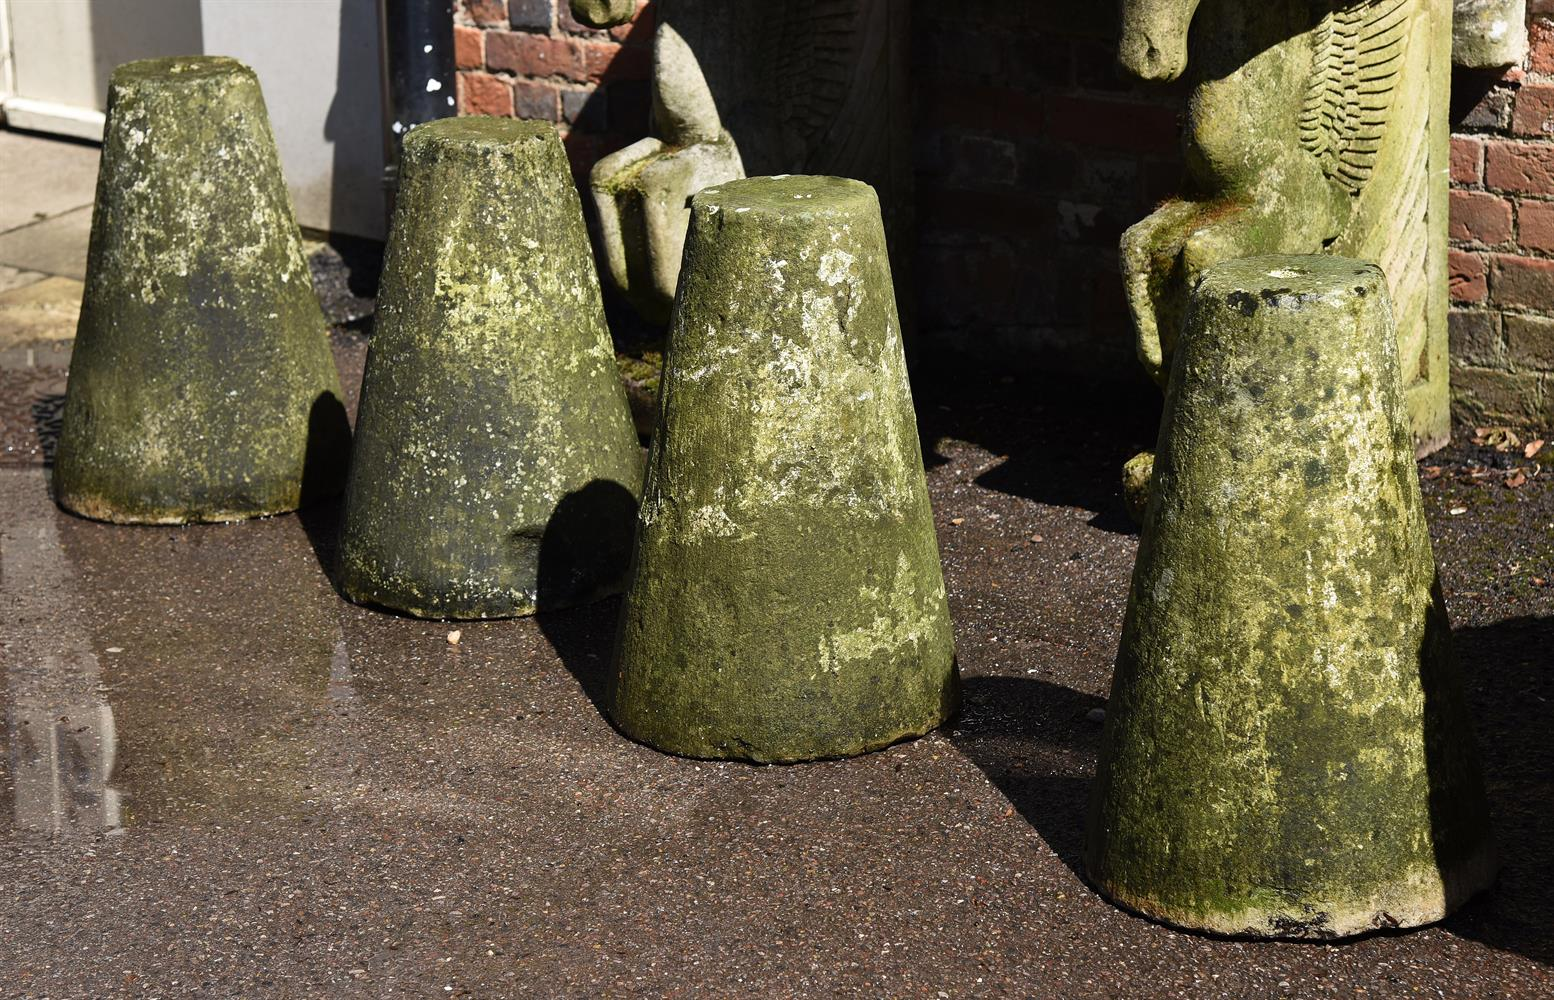 A SET OF FOUR PORTLAND STONE DRIVEWAY MARKERS, 19TH CENTURY